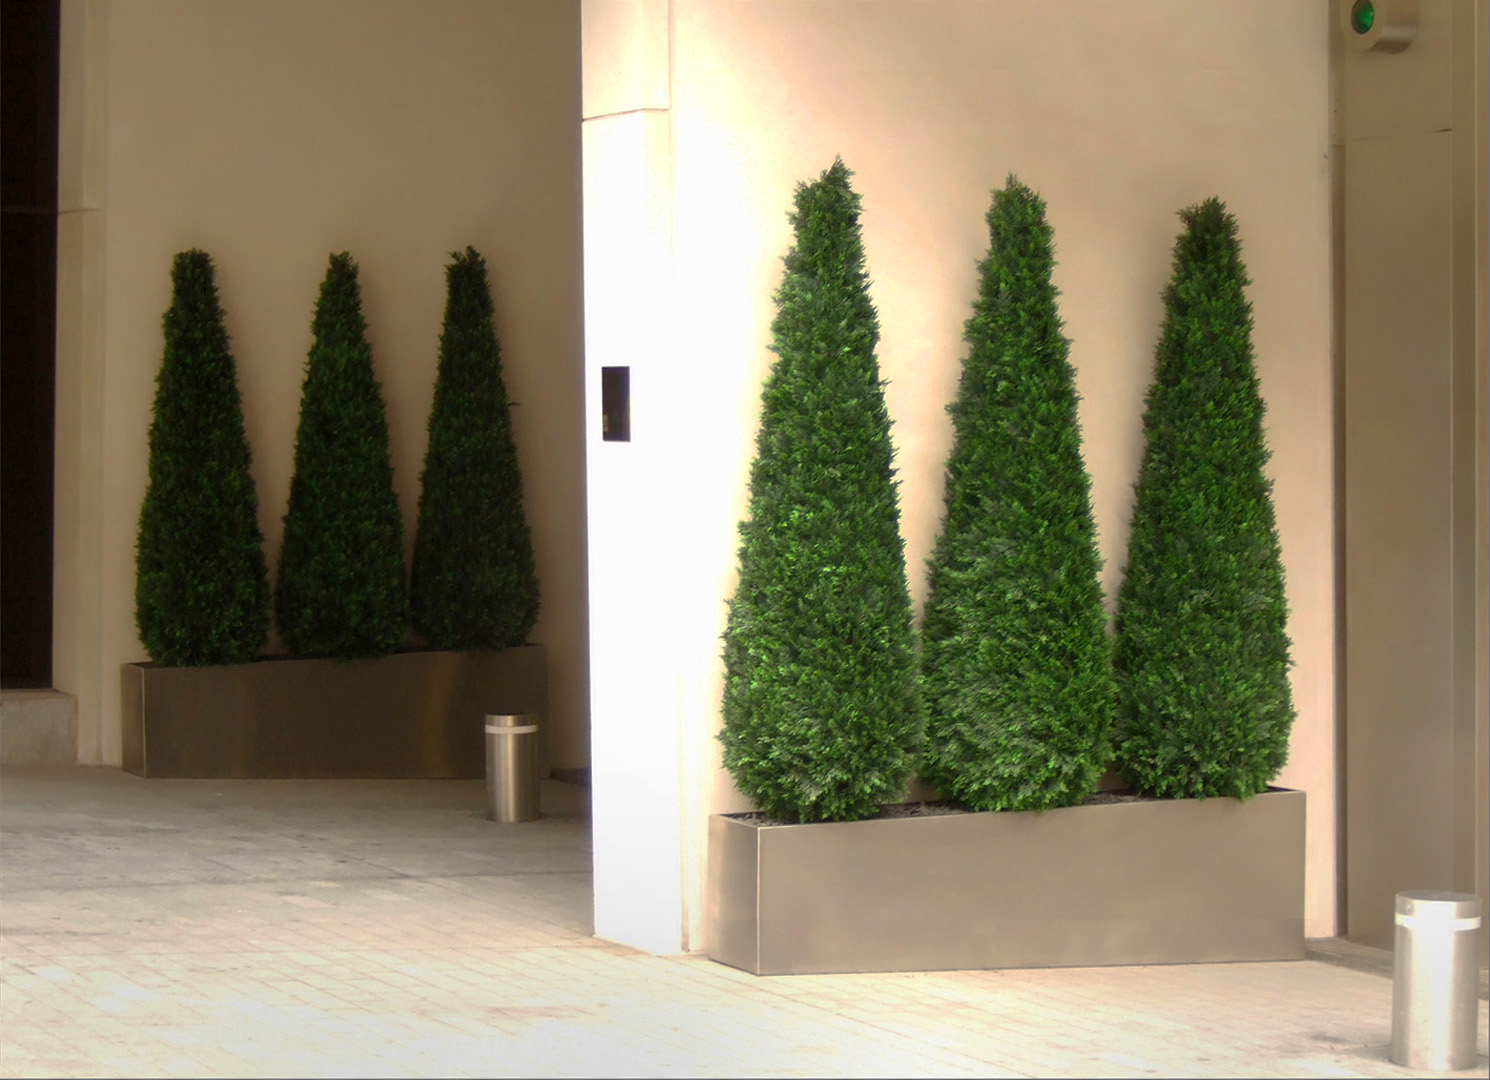 456 fake landscapes mini cypress trees 180cm One Hyde Park